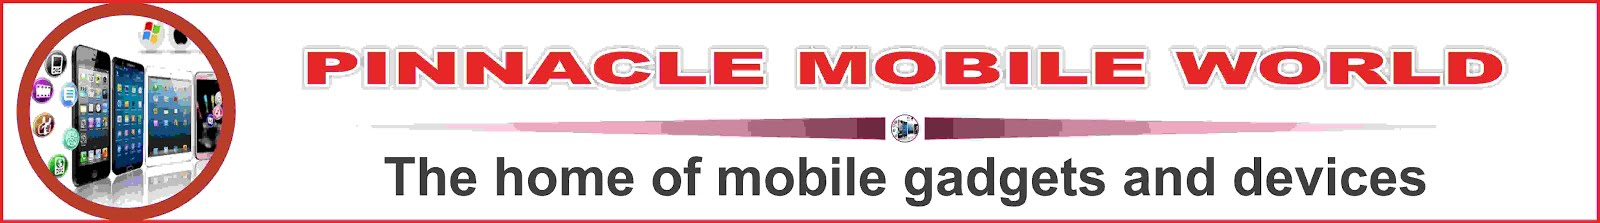 Pinnacle Mobile World